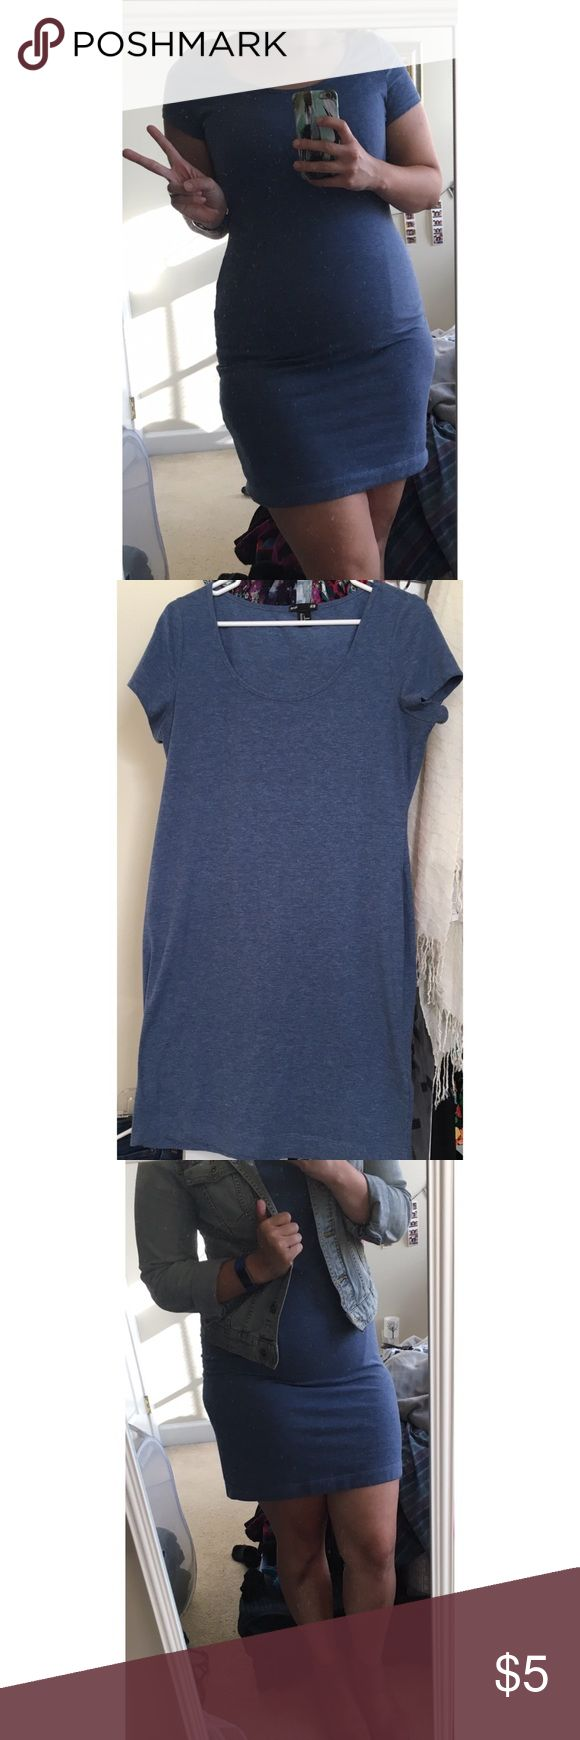 H&M Basic T-Shirt Dress (body con, very fitted) Fitted t-shirt dress, very comfy, light material but not thin. Grayish blue color. H&M Dresses